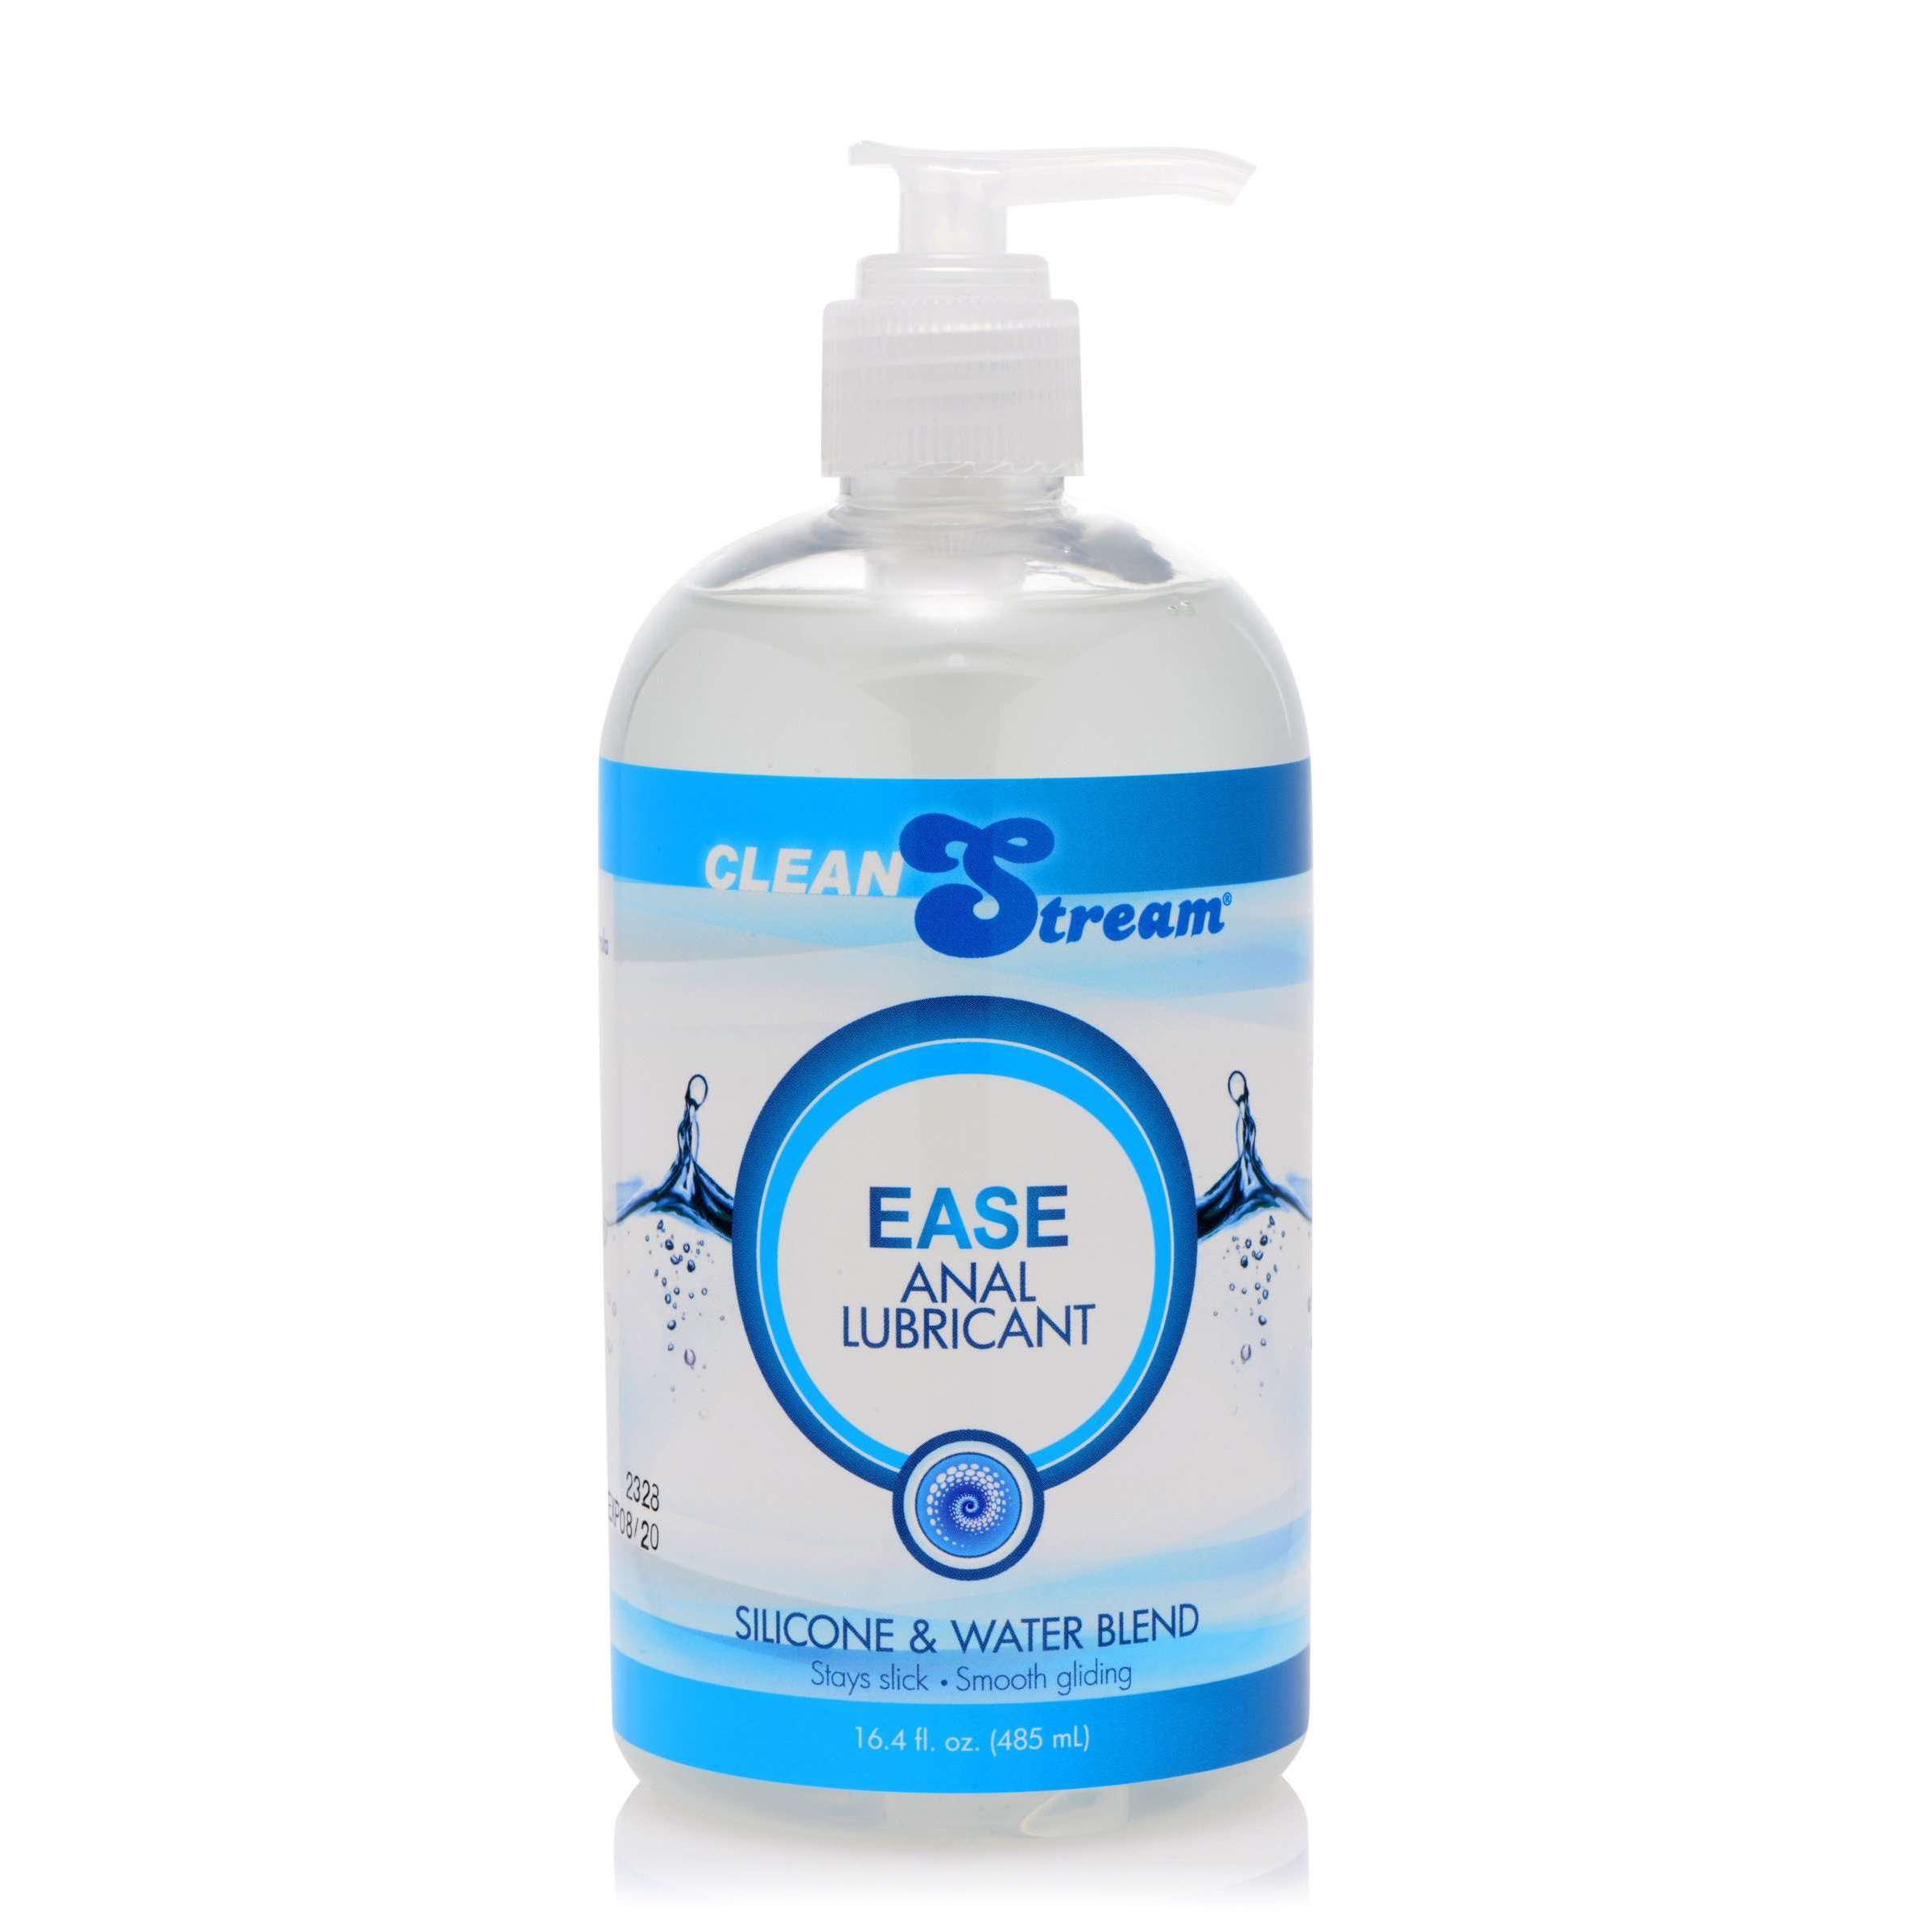 CleanStream Ease Hybrid Anal Lubricant 16.4 oz